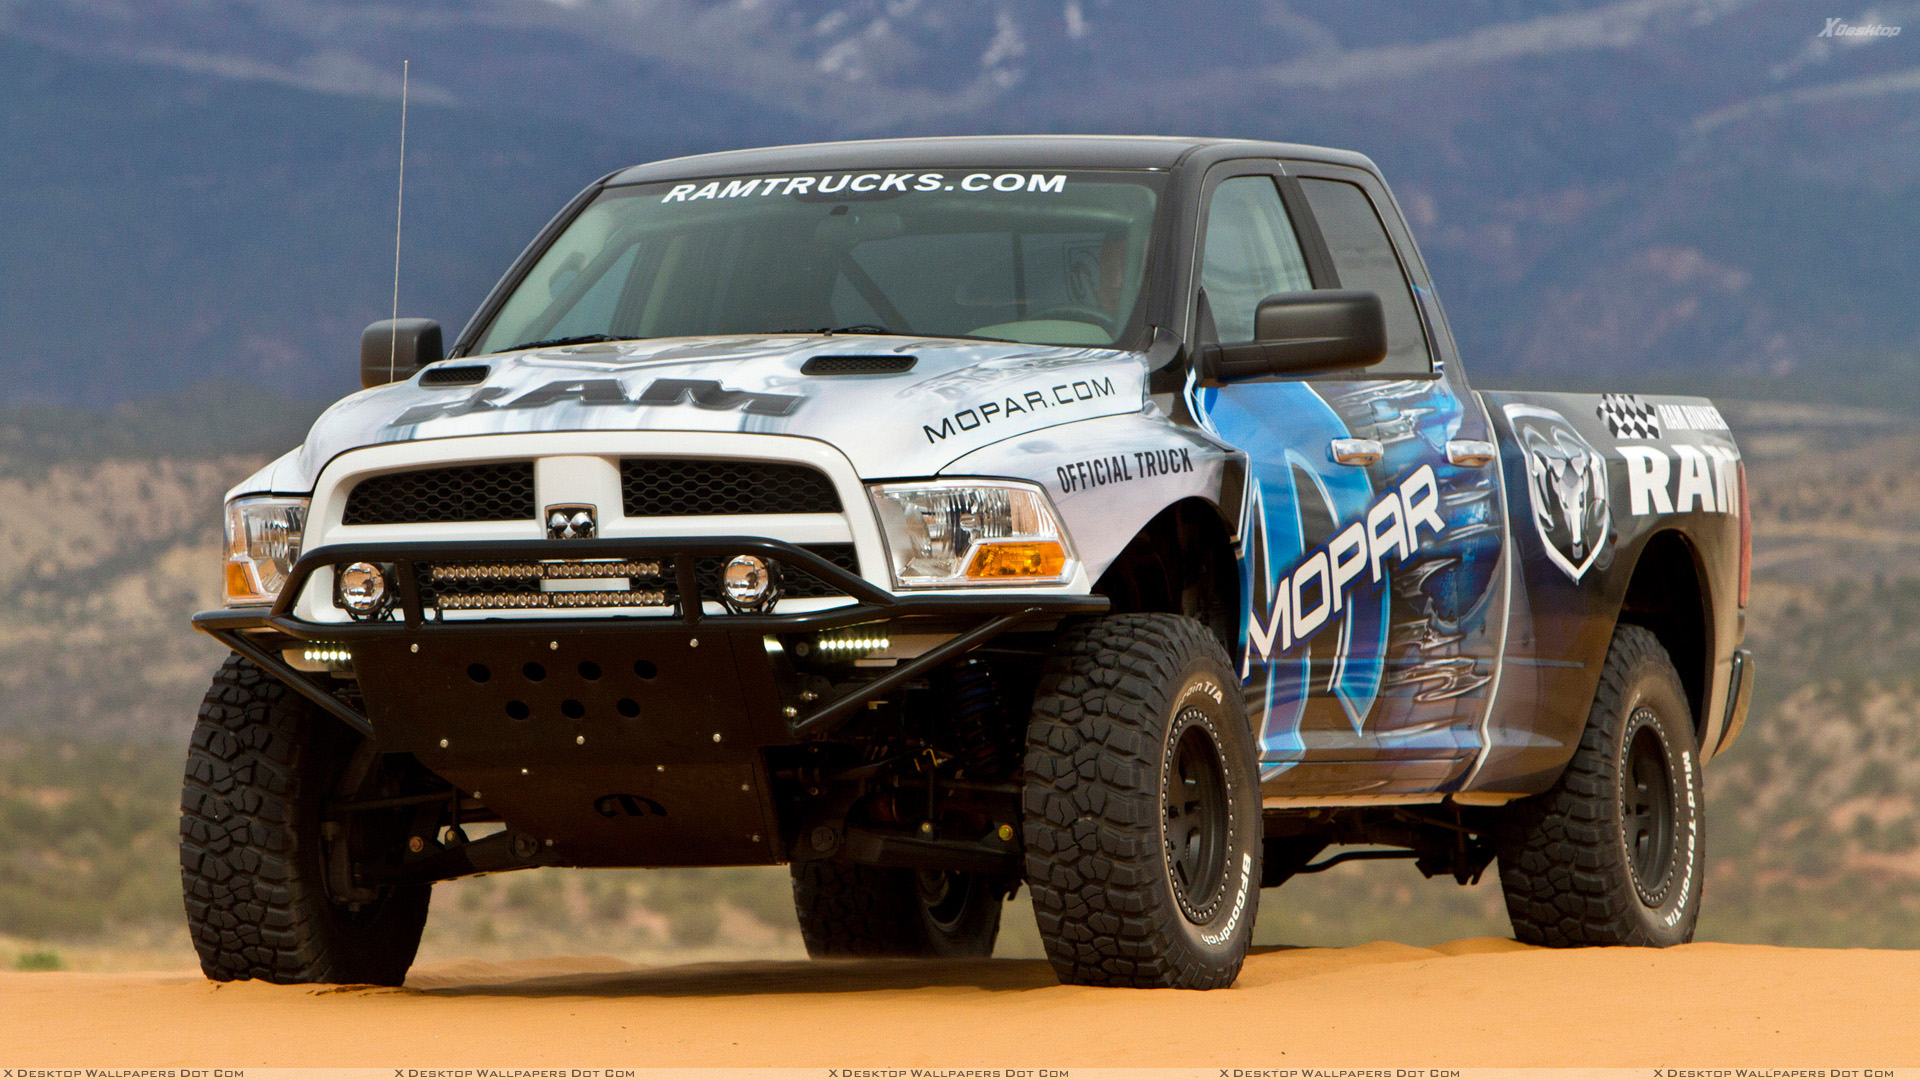 2011 Dodge Ram Runner Mopar Front Pose Wallpaper 1920x1080